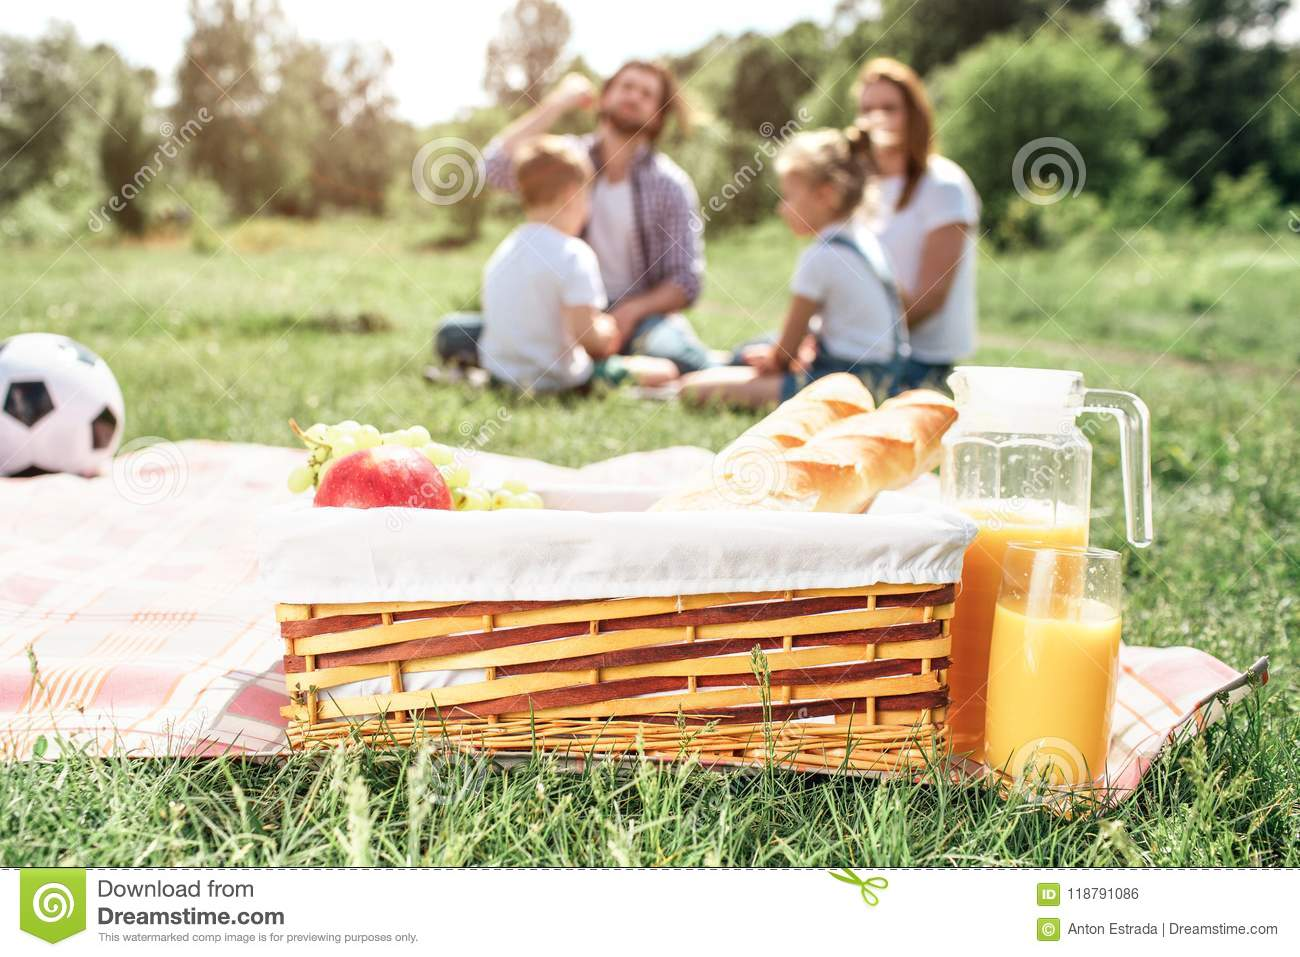 A picture of basket with fruit and bread standing on blanket on grass. There is a big jar of orange juice besides it